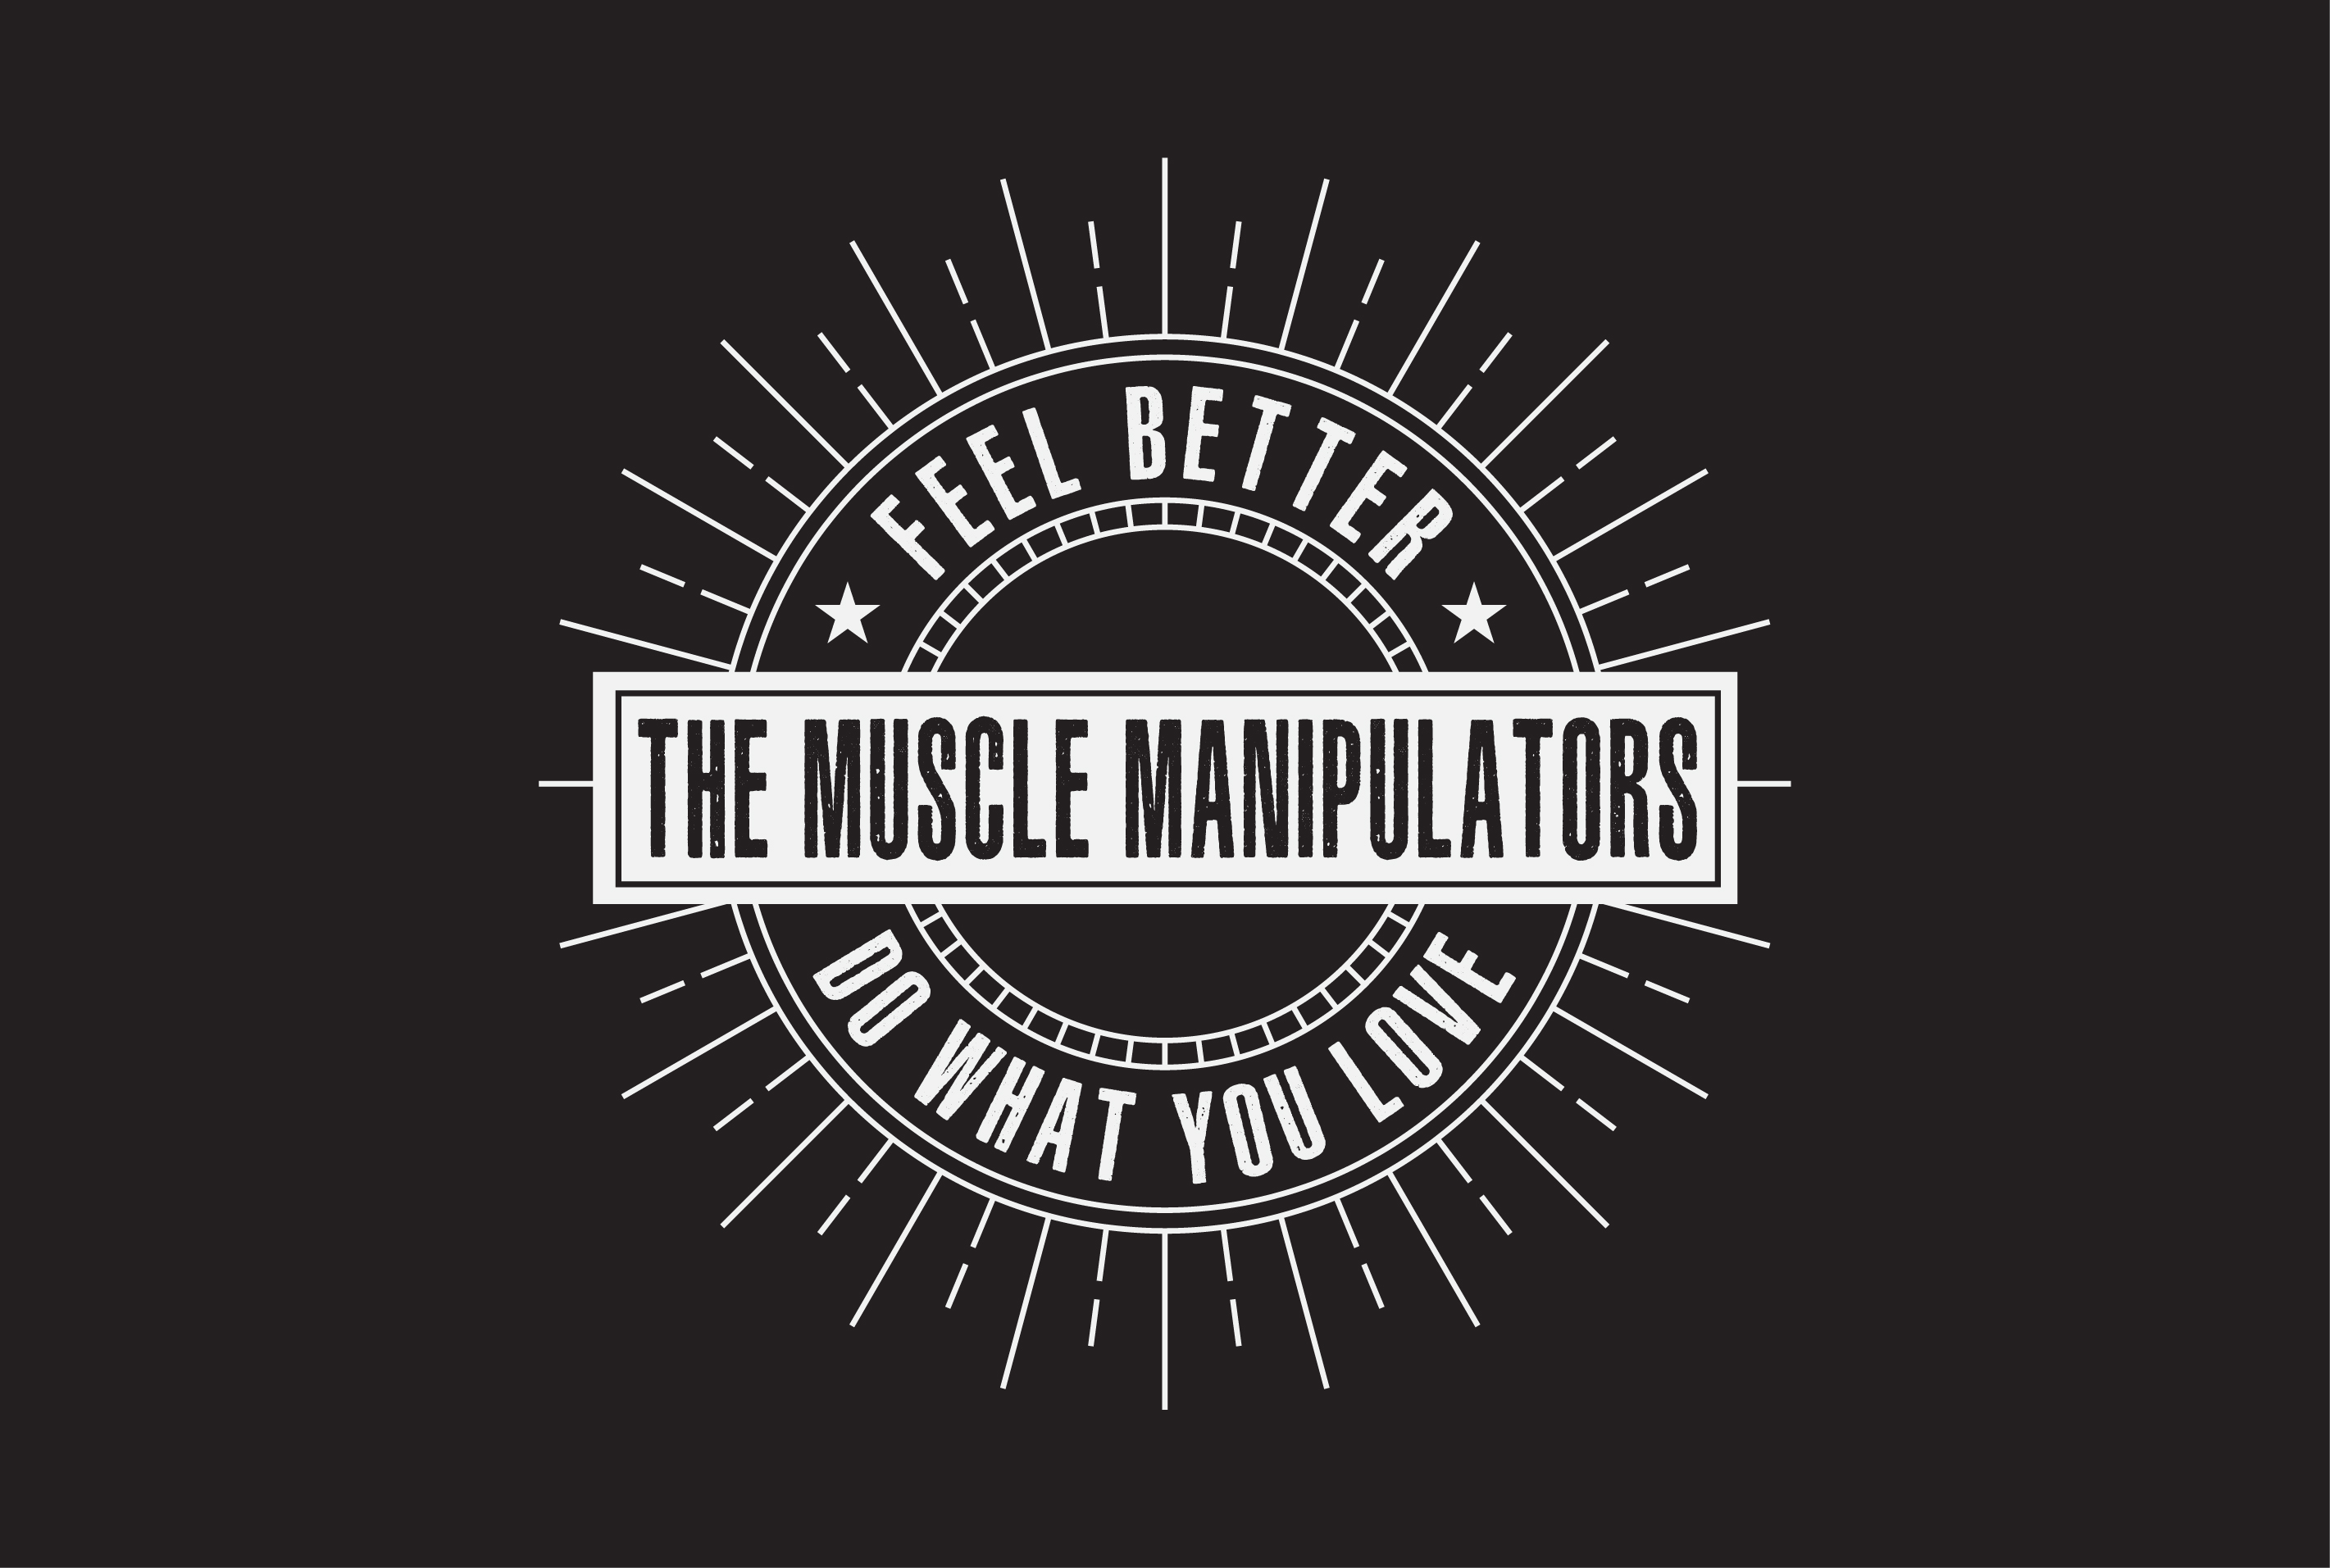 The Muscle Manipulators image